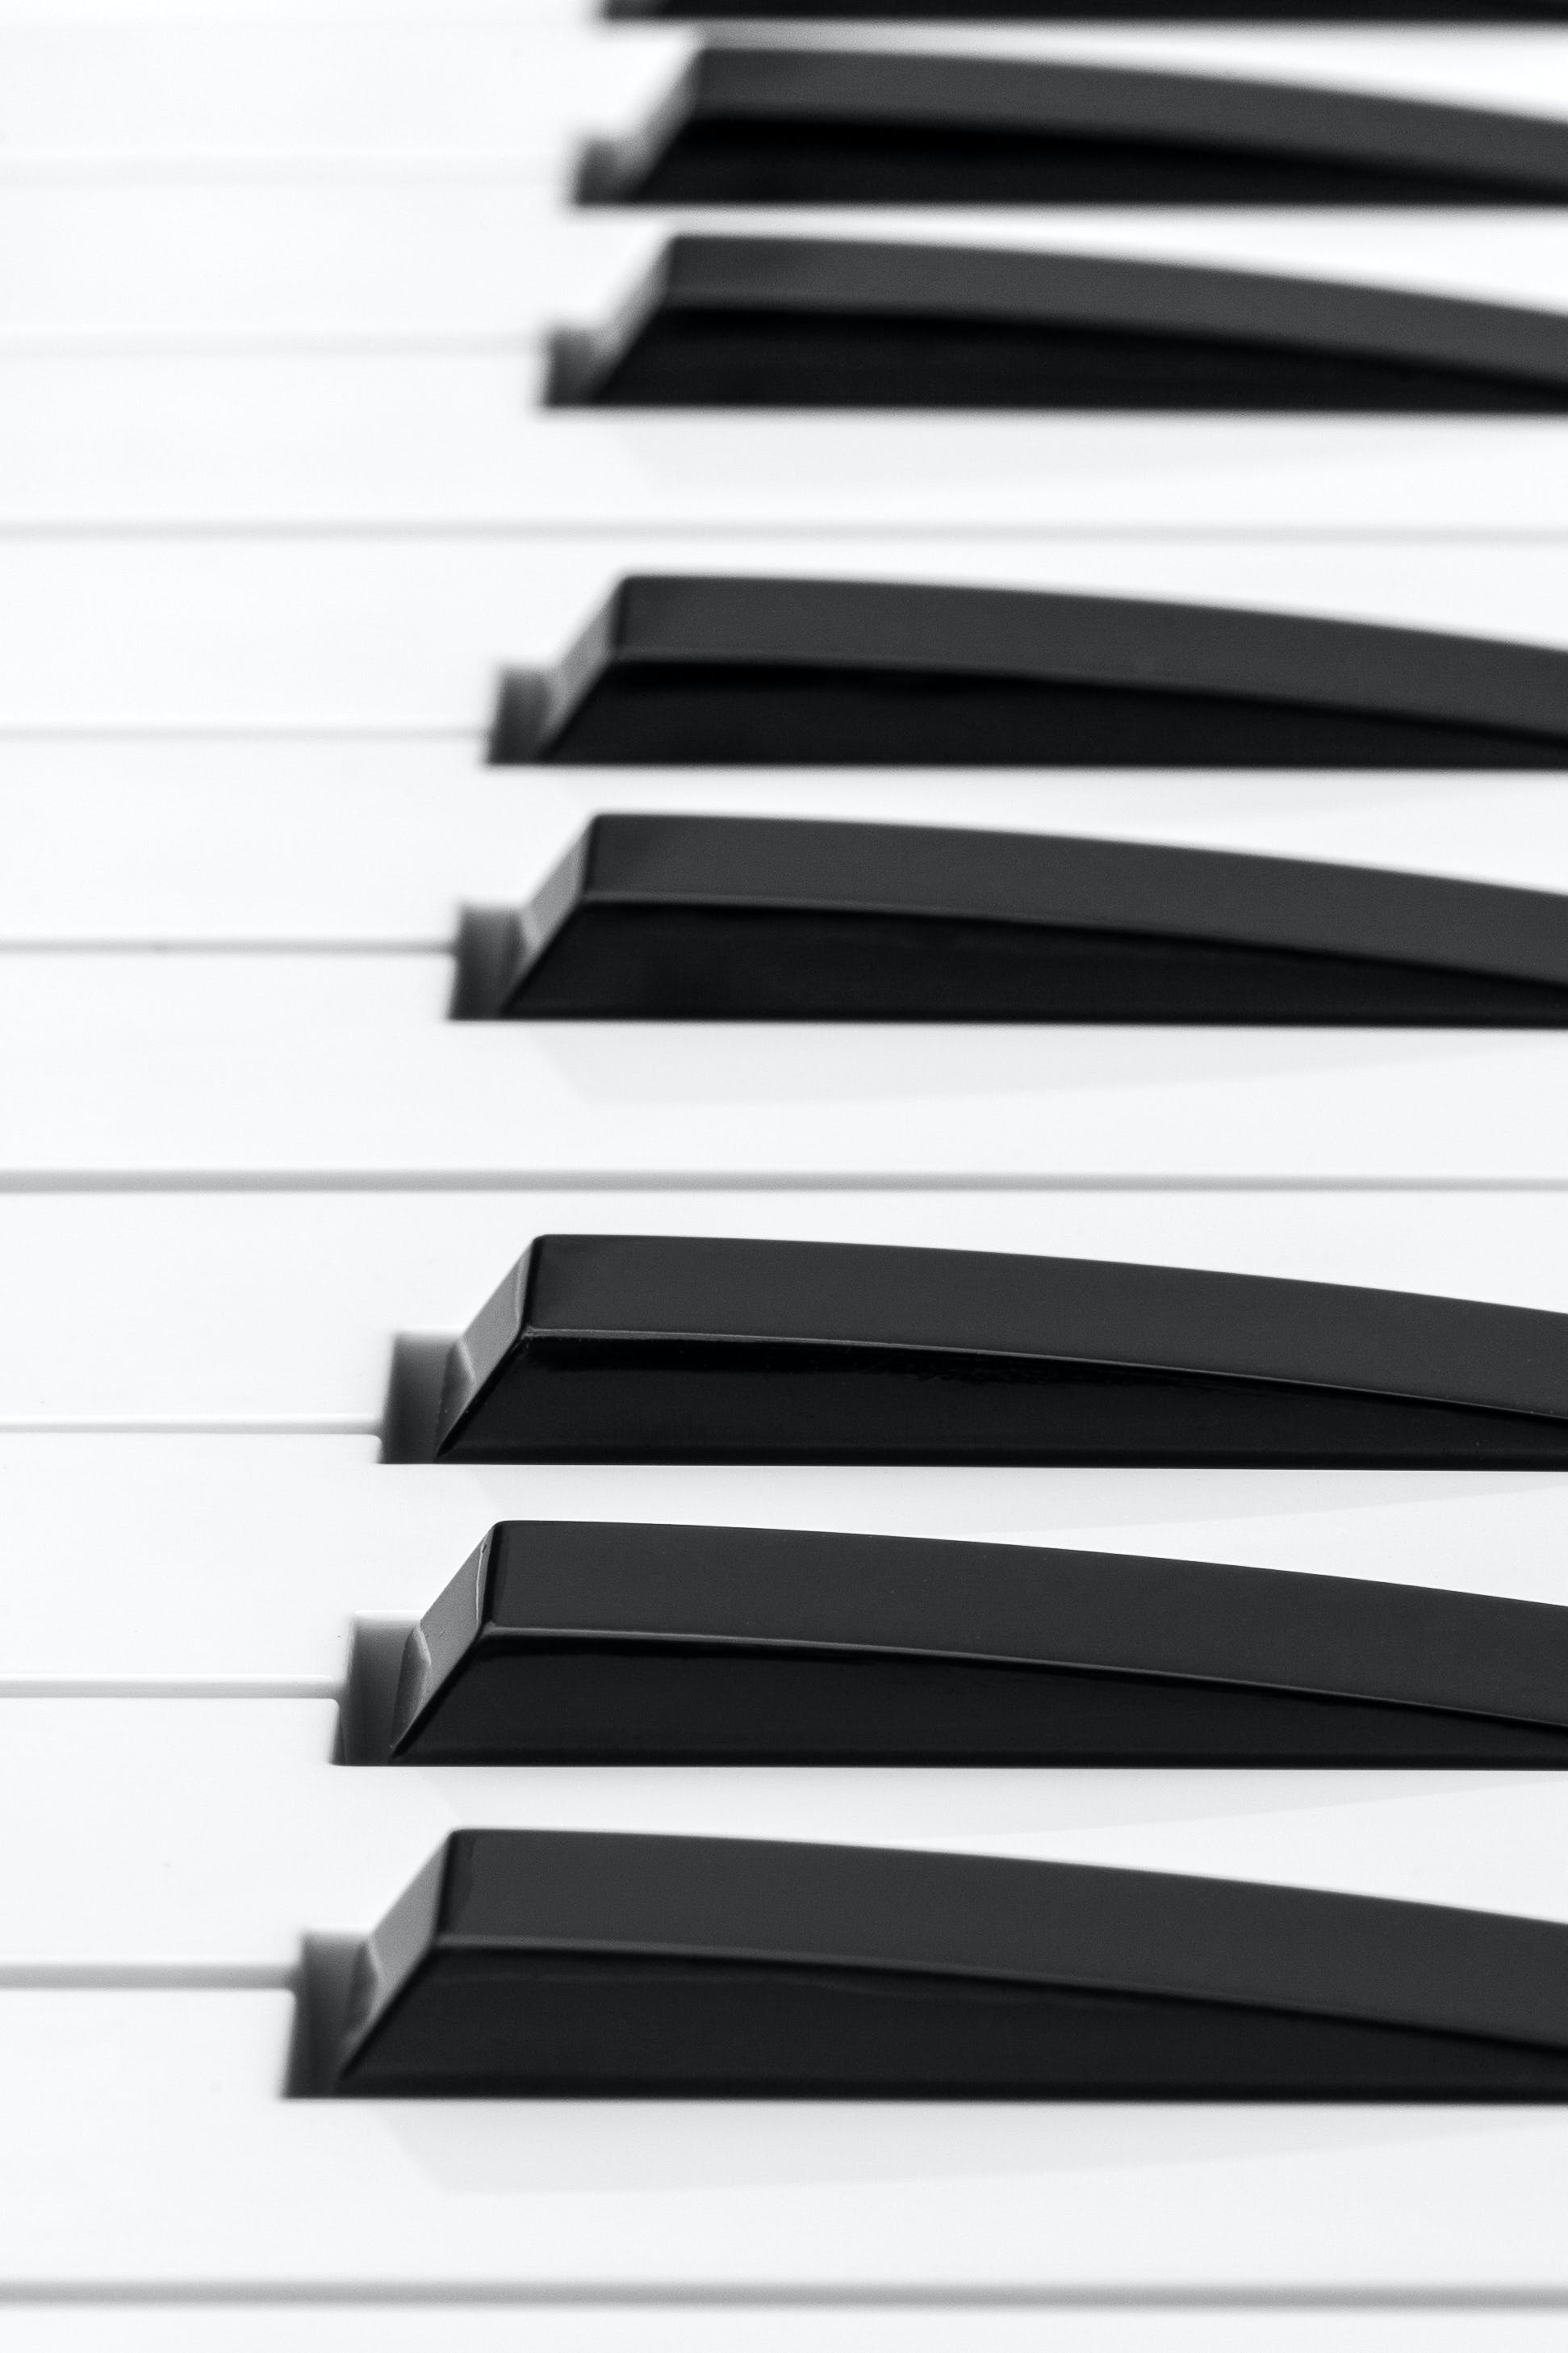 blanc i negre, instrument, instrument musical